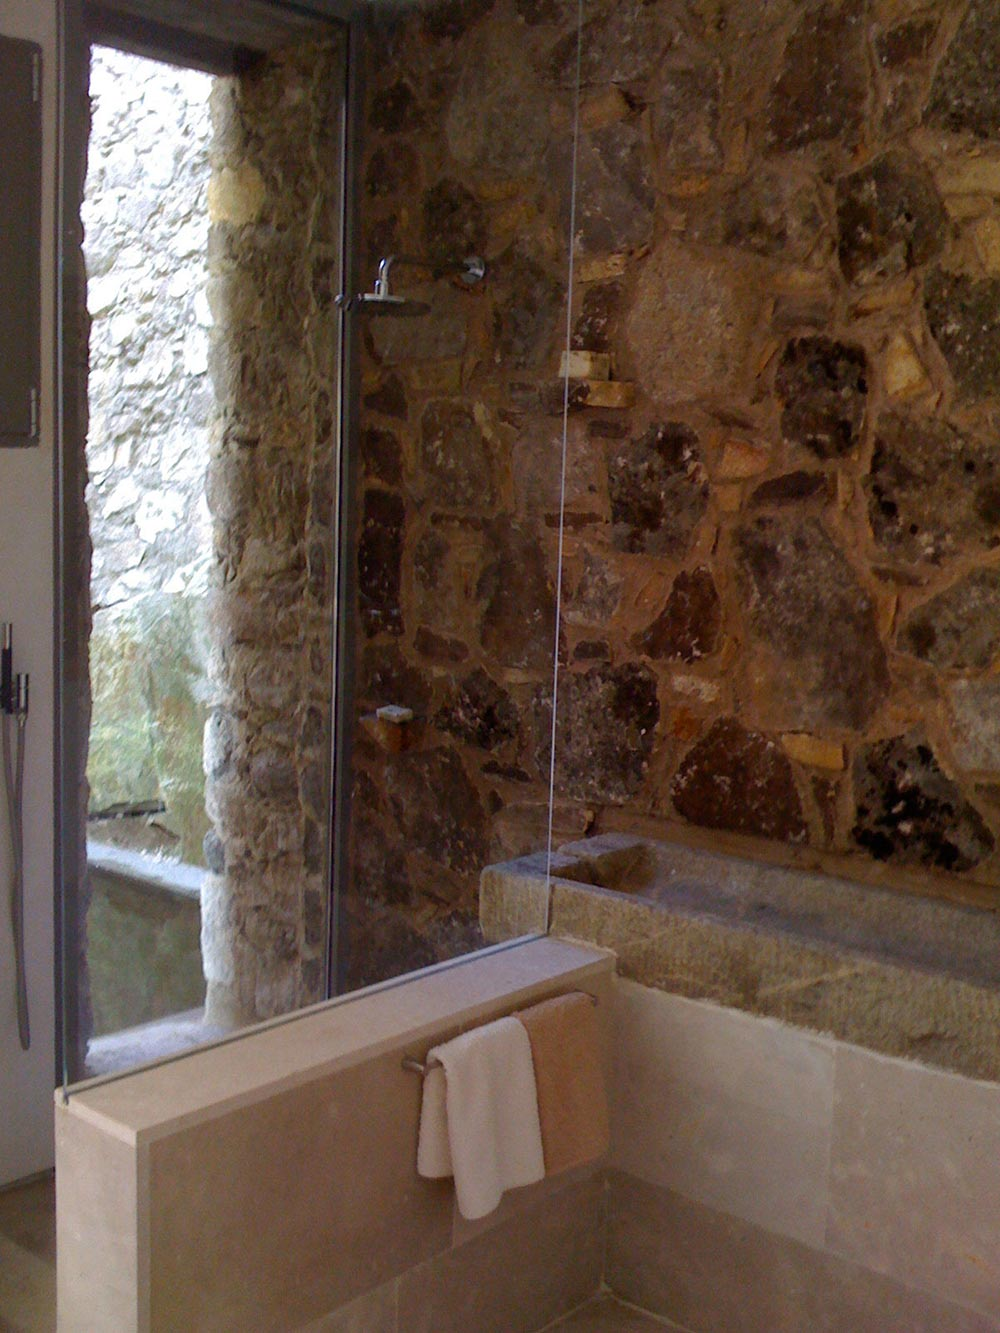 Shower, Glass Wall, Bathroom, Finca en Extremadura in Cáceres, Spain by ÁBATON